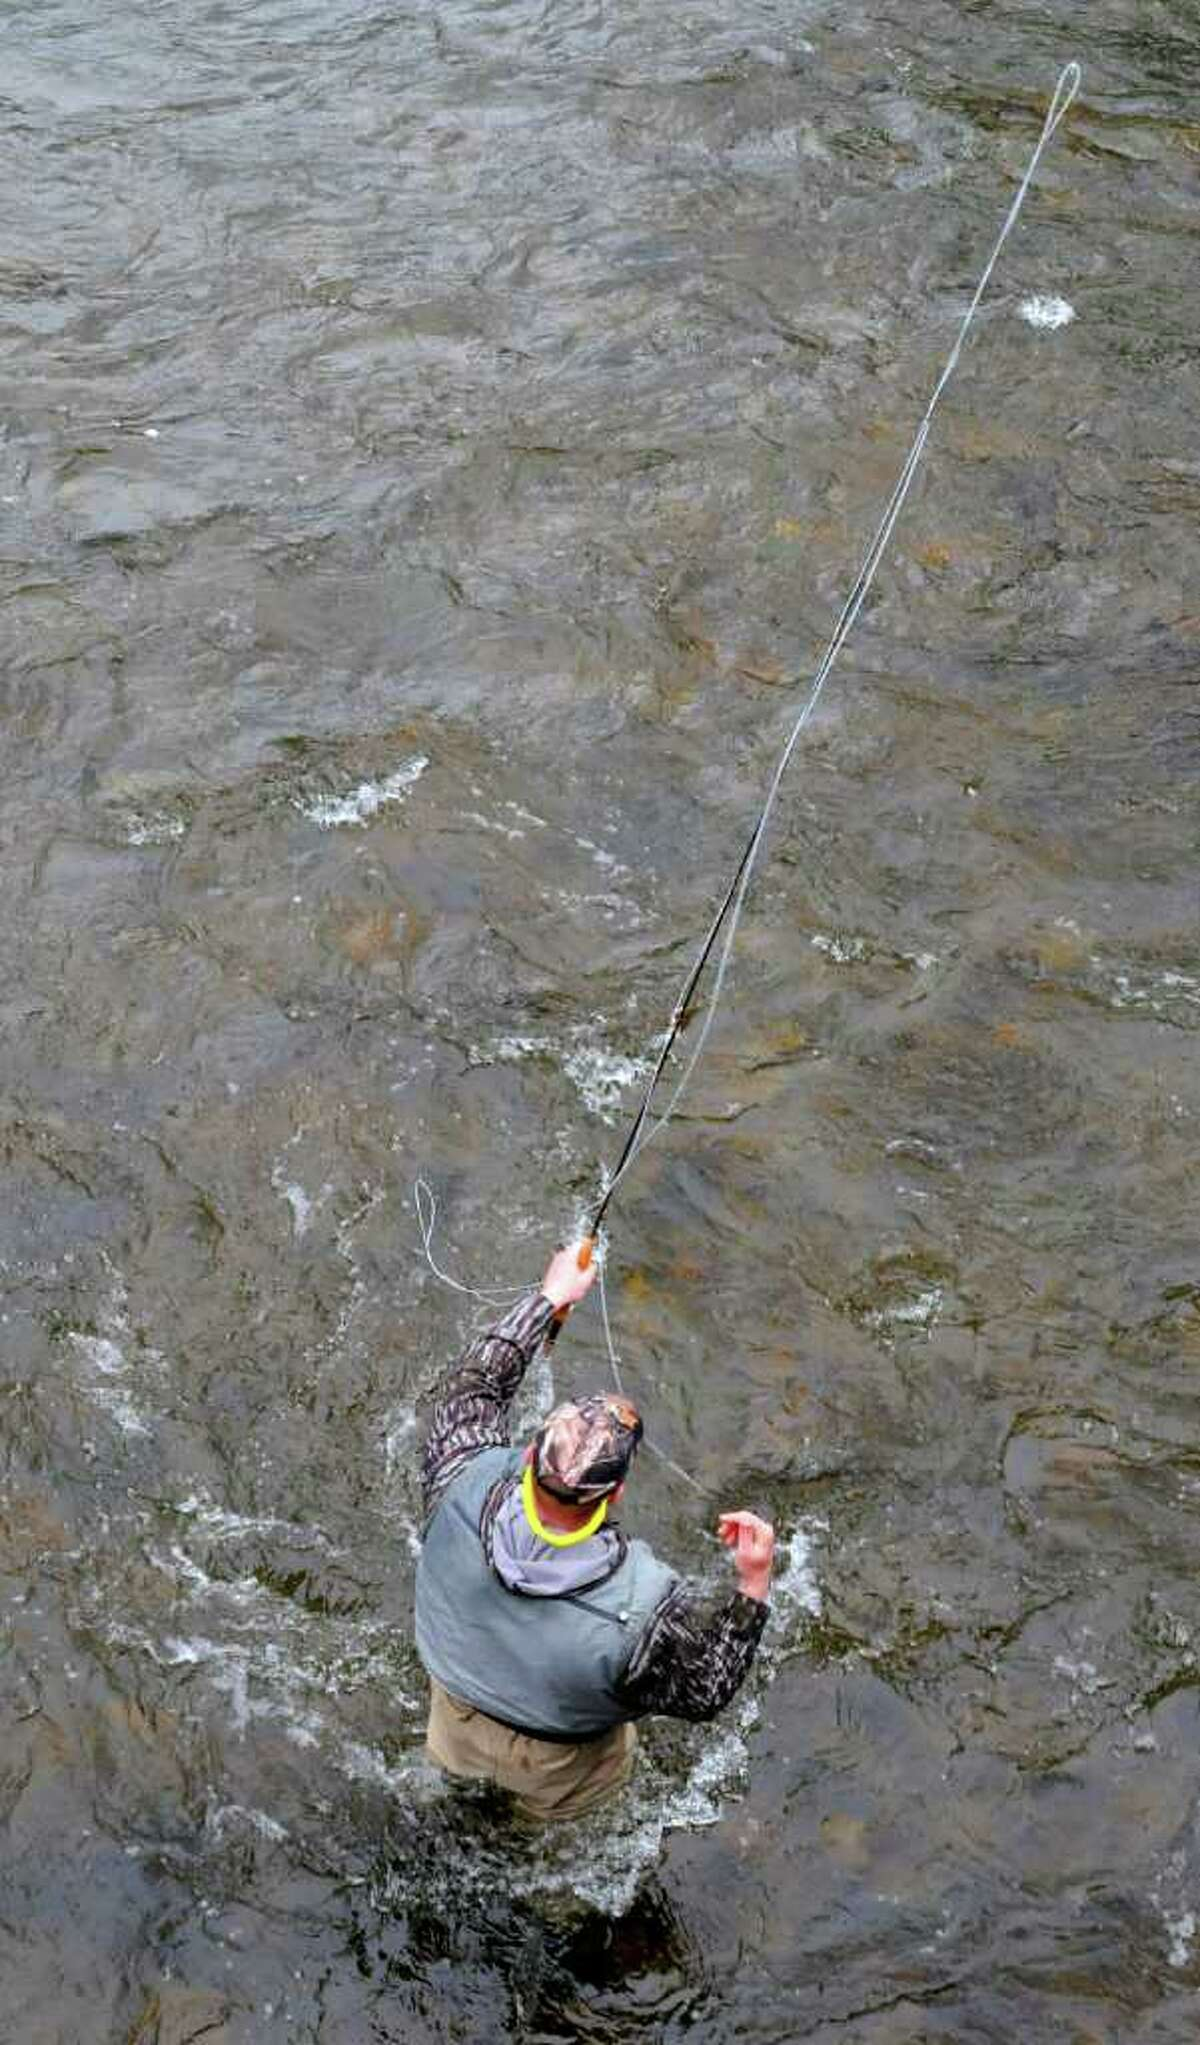 Josh Velicky of Clifton Park uses his fly rod on a rainy first day of trout fishing season in Factory Village, N.Y., on Friday afternoon, April 1, 2011. (Lori Van Buren / Times Union)